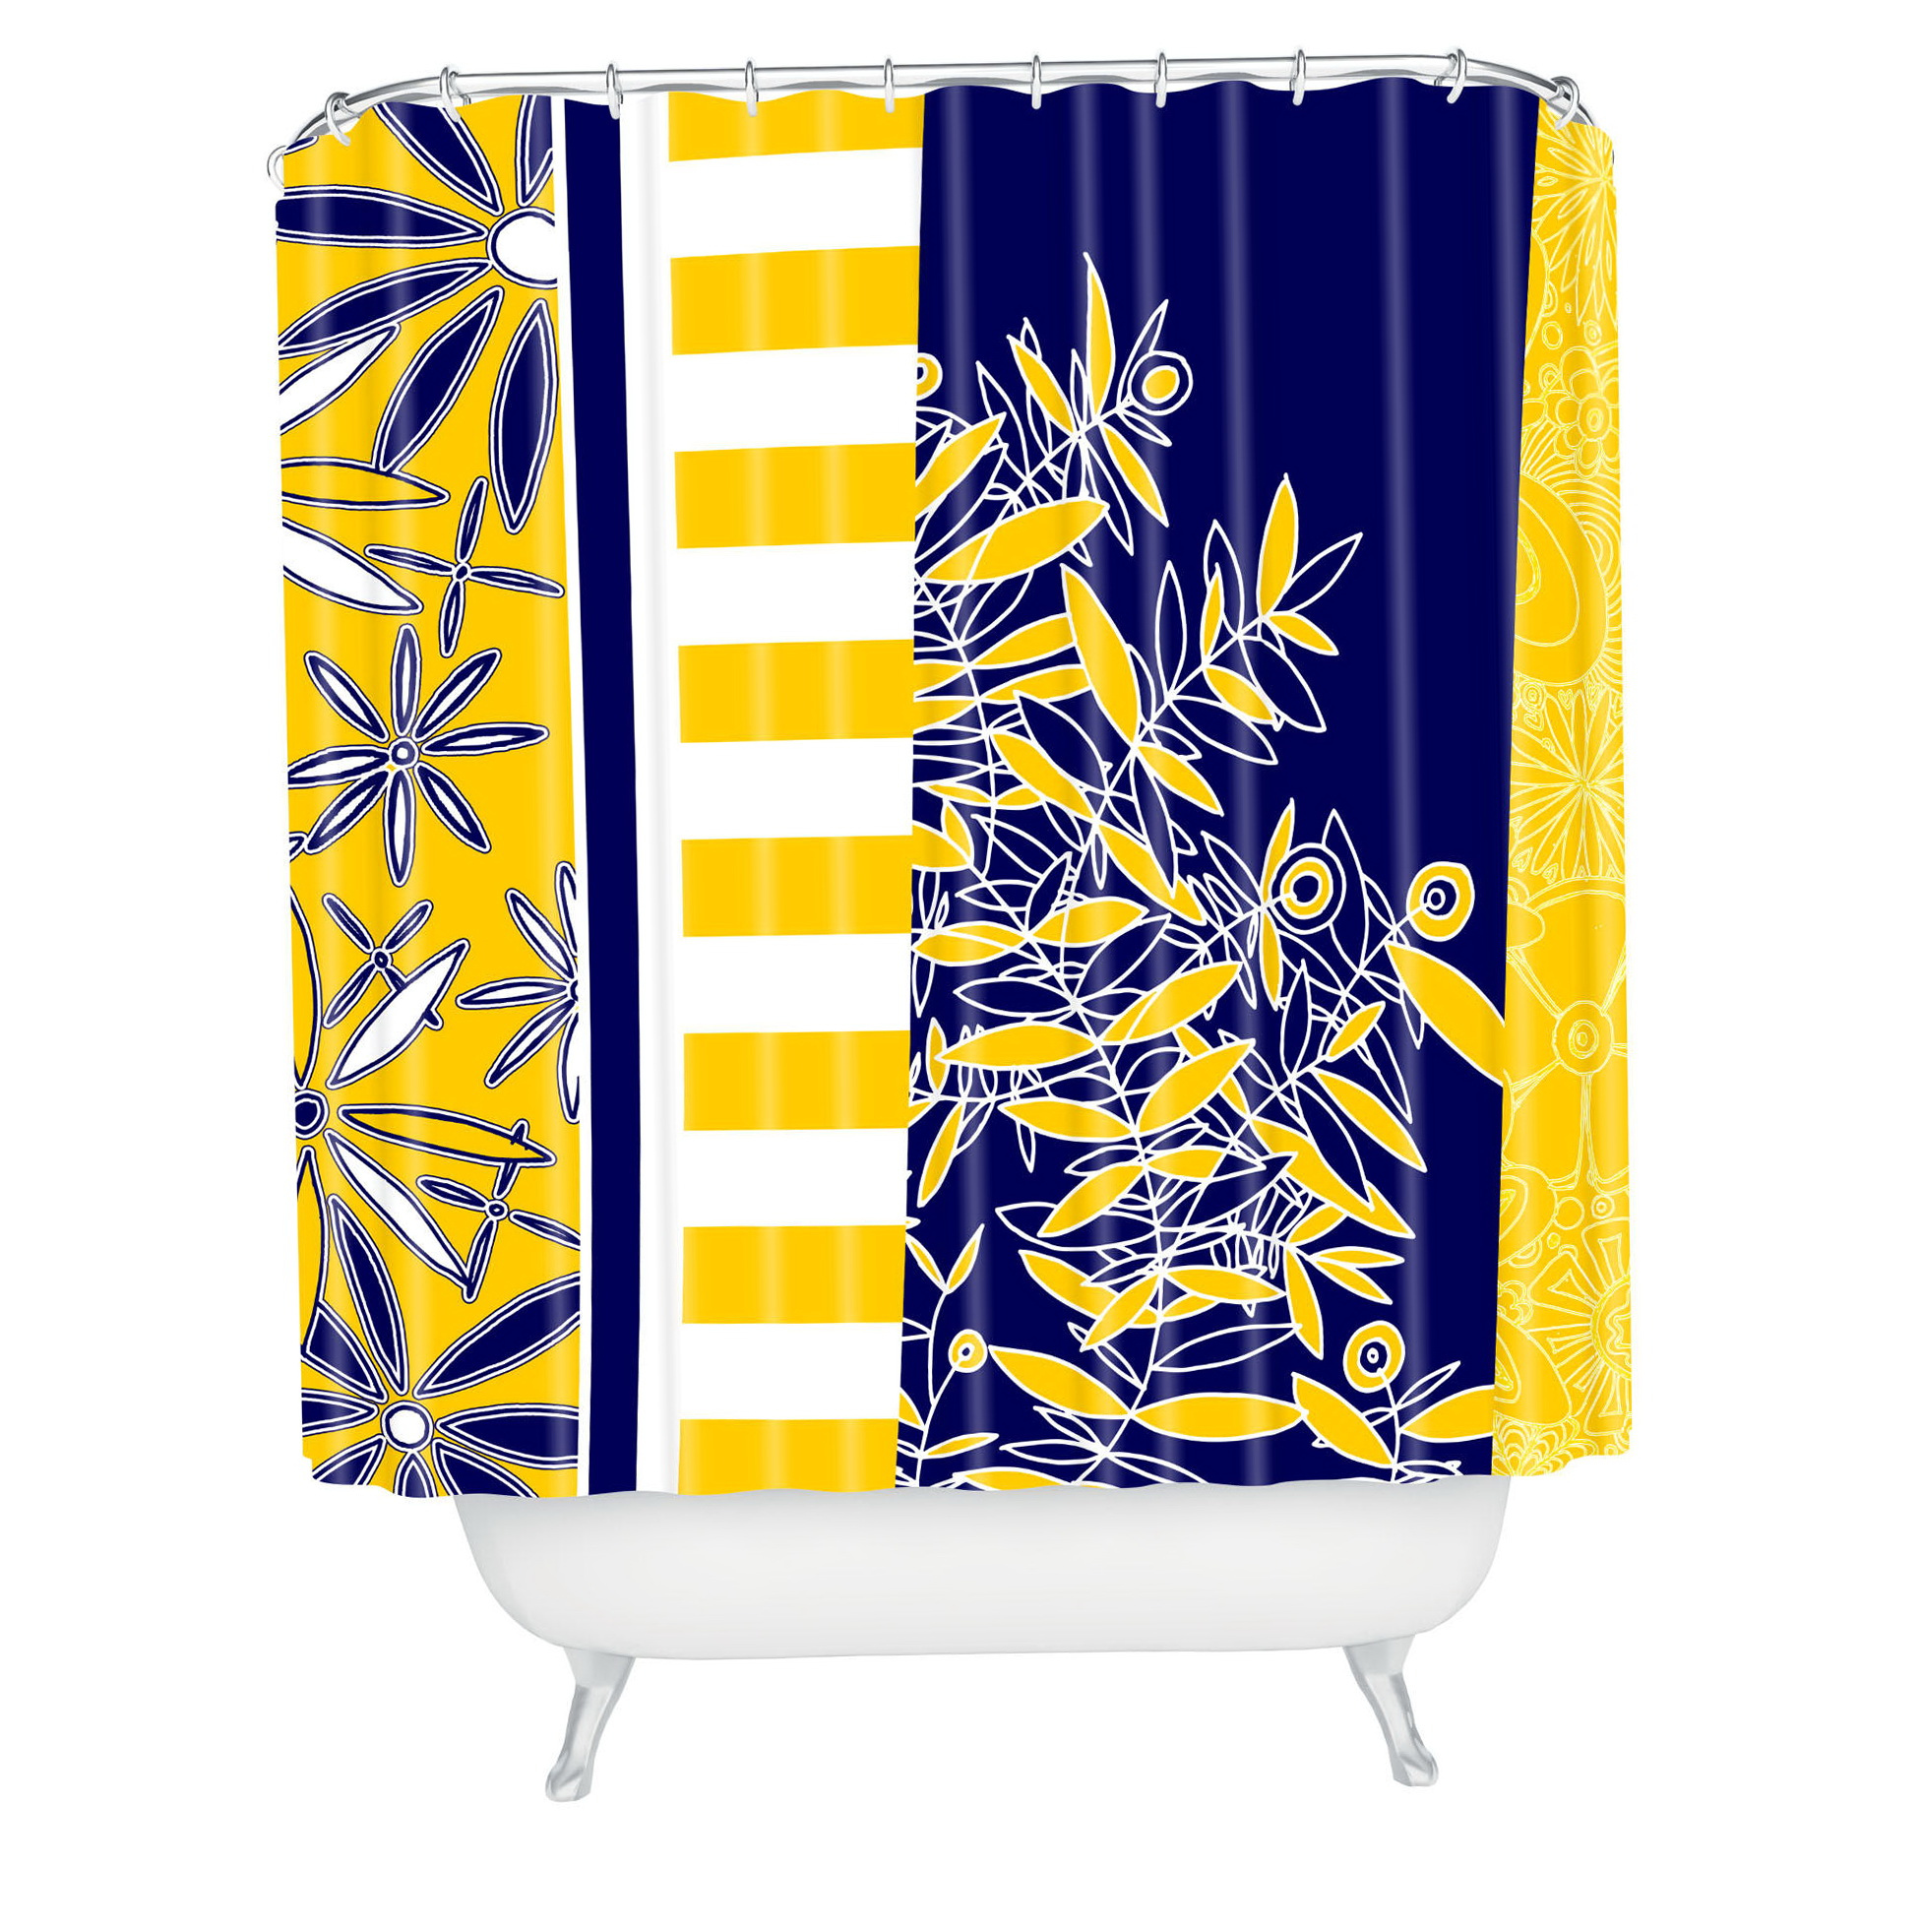 Navy Blue And Yellow Curtains: Yellow And Navy Blue Curtains